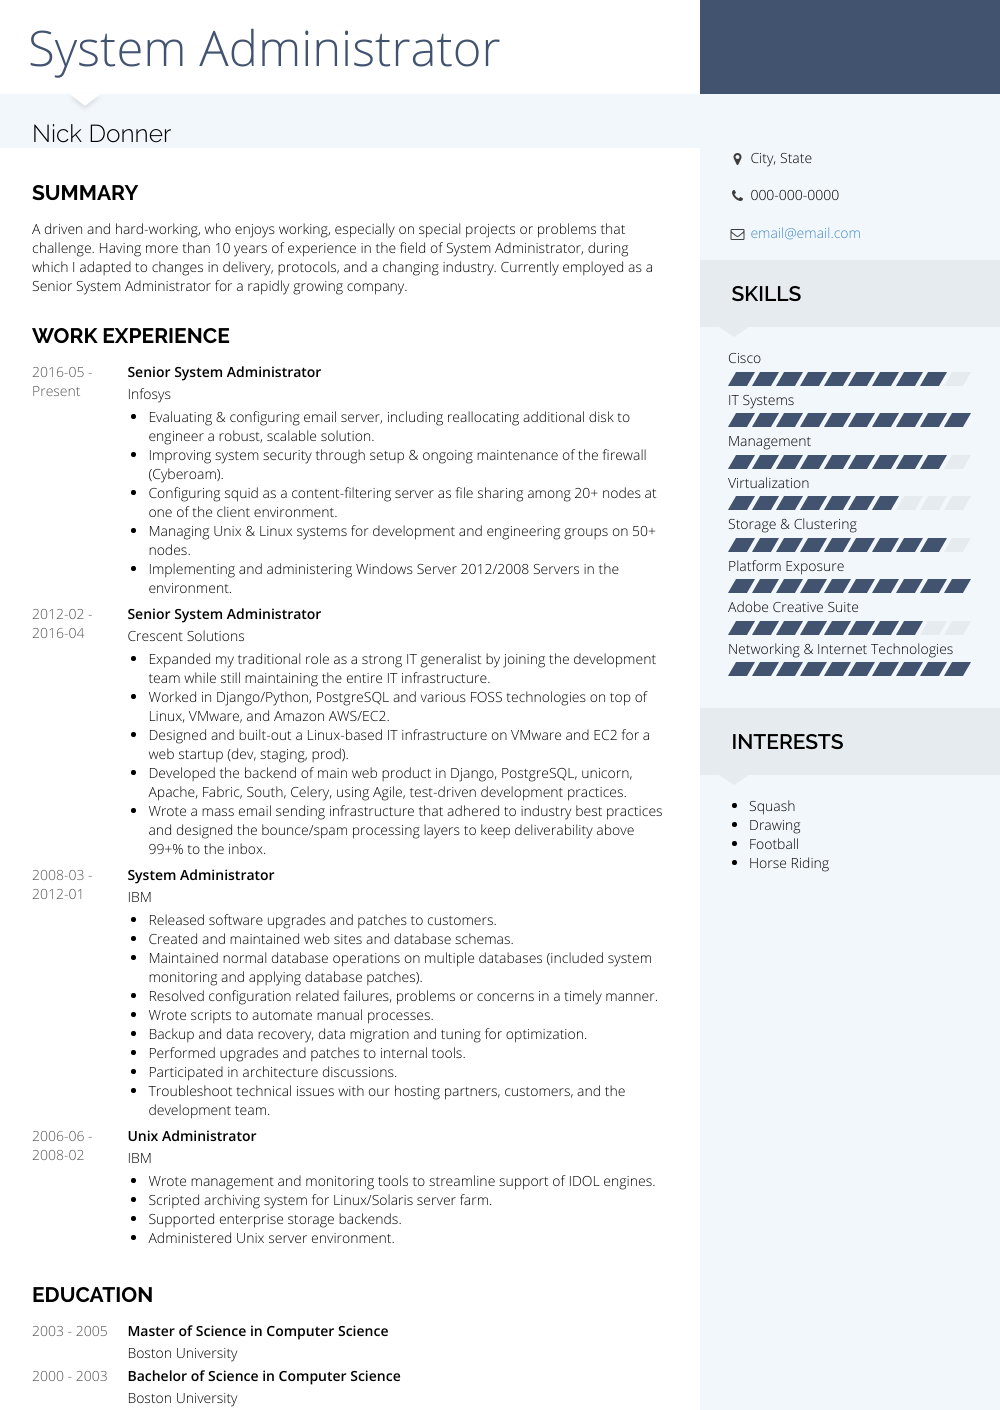 System Administrator Resume Sample and Template